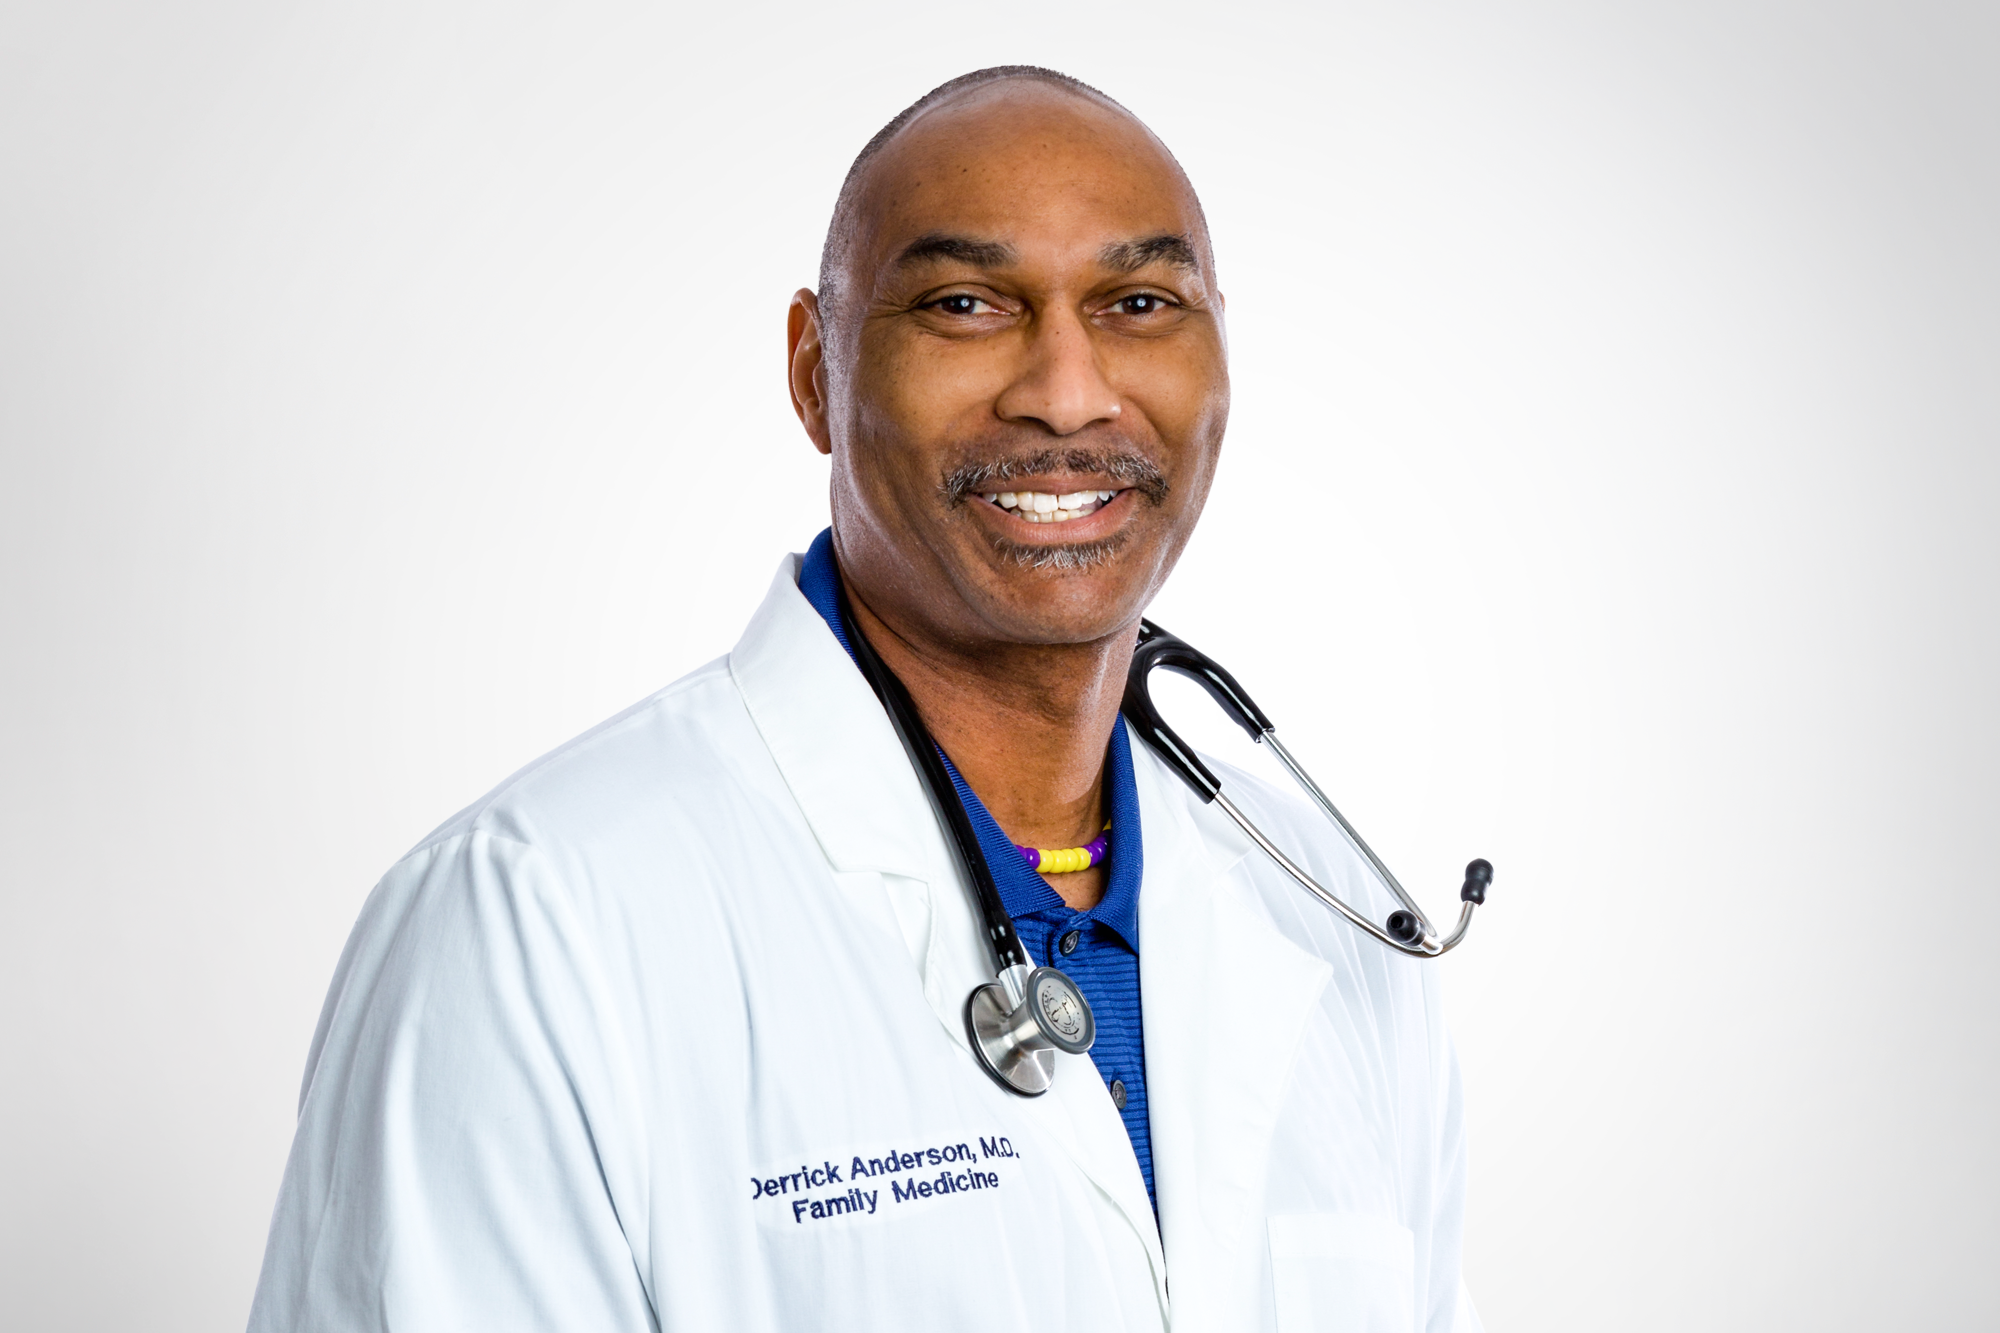 Derrick Anderson, MD, Family Physician - Dr. Anderson received his MD from University of South Carolina. He's received several awards and is especially interested in minority and men's health, adolescent medicine and volunteer coaching.